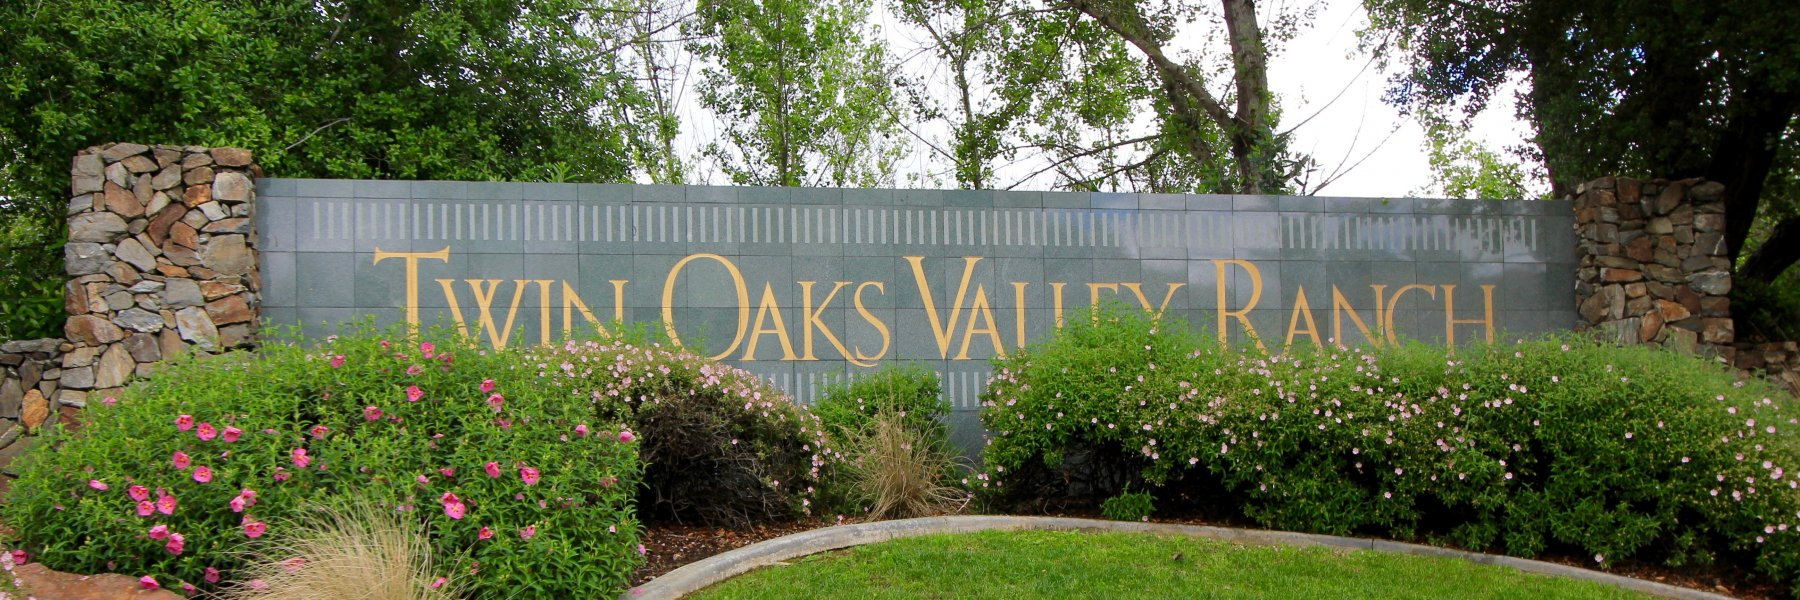 Twin Oaks Valley Ranch is a community of homes in San Marcos California